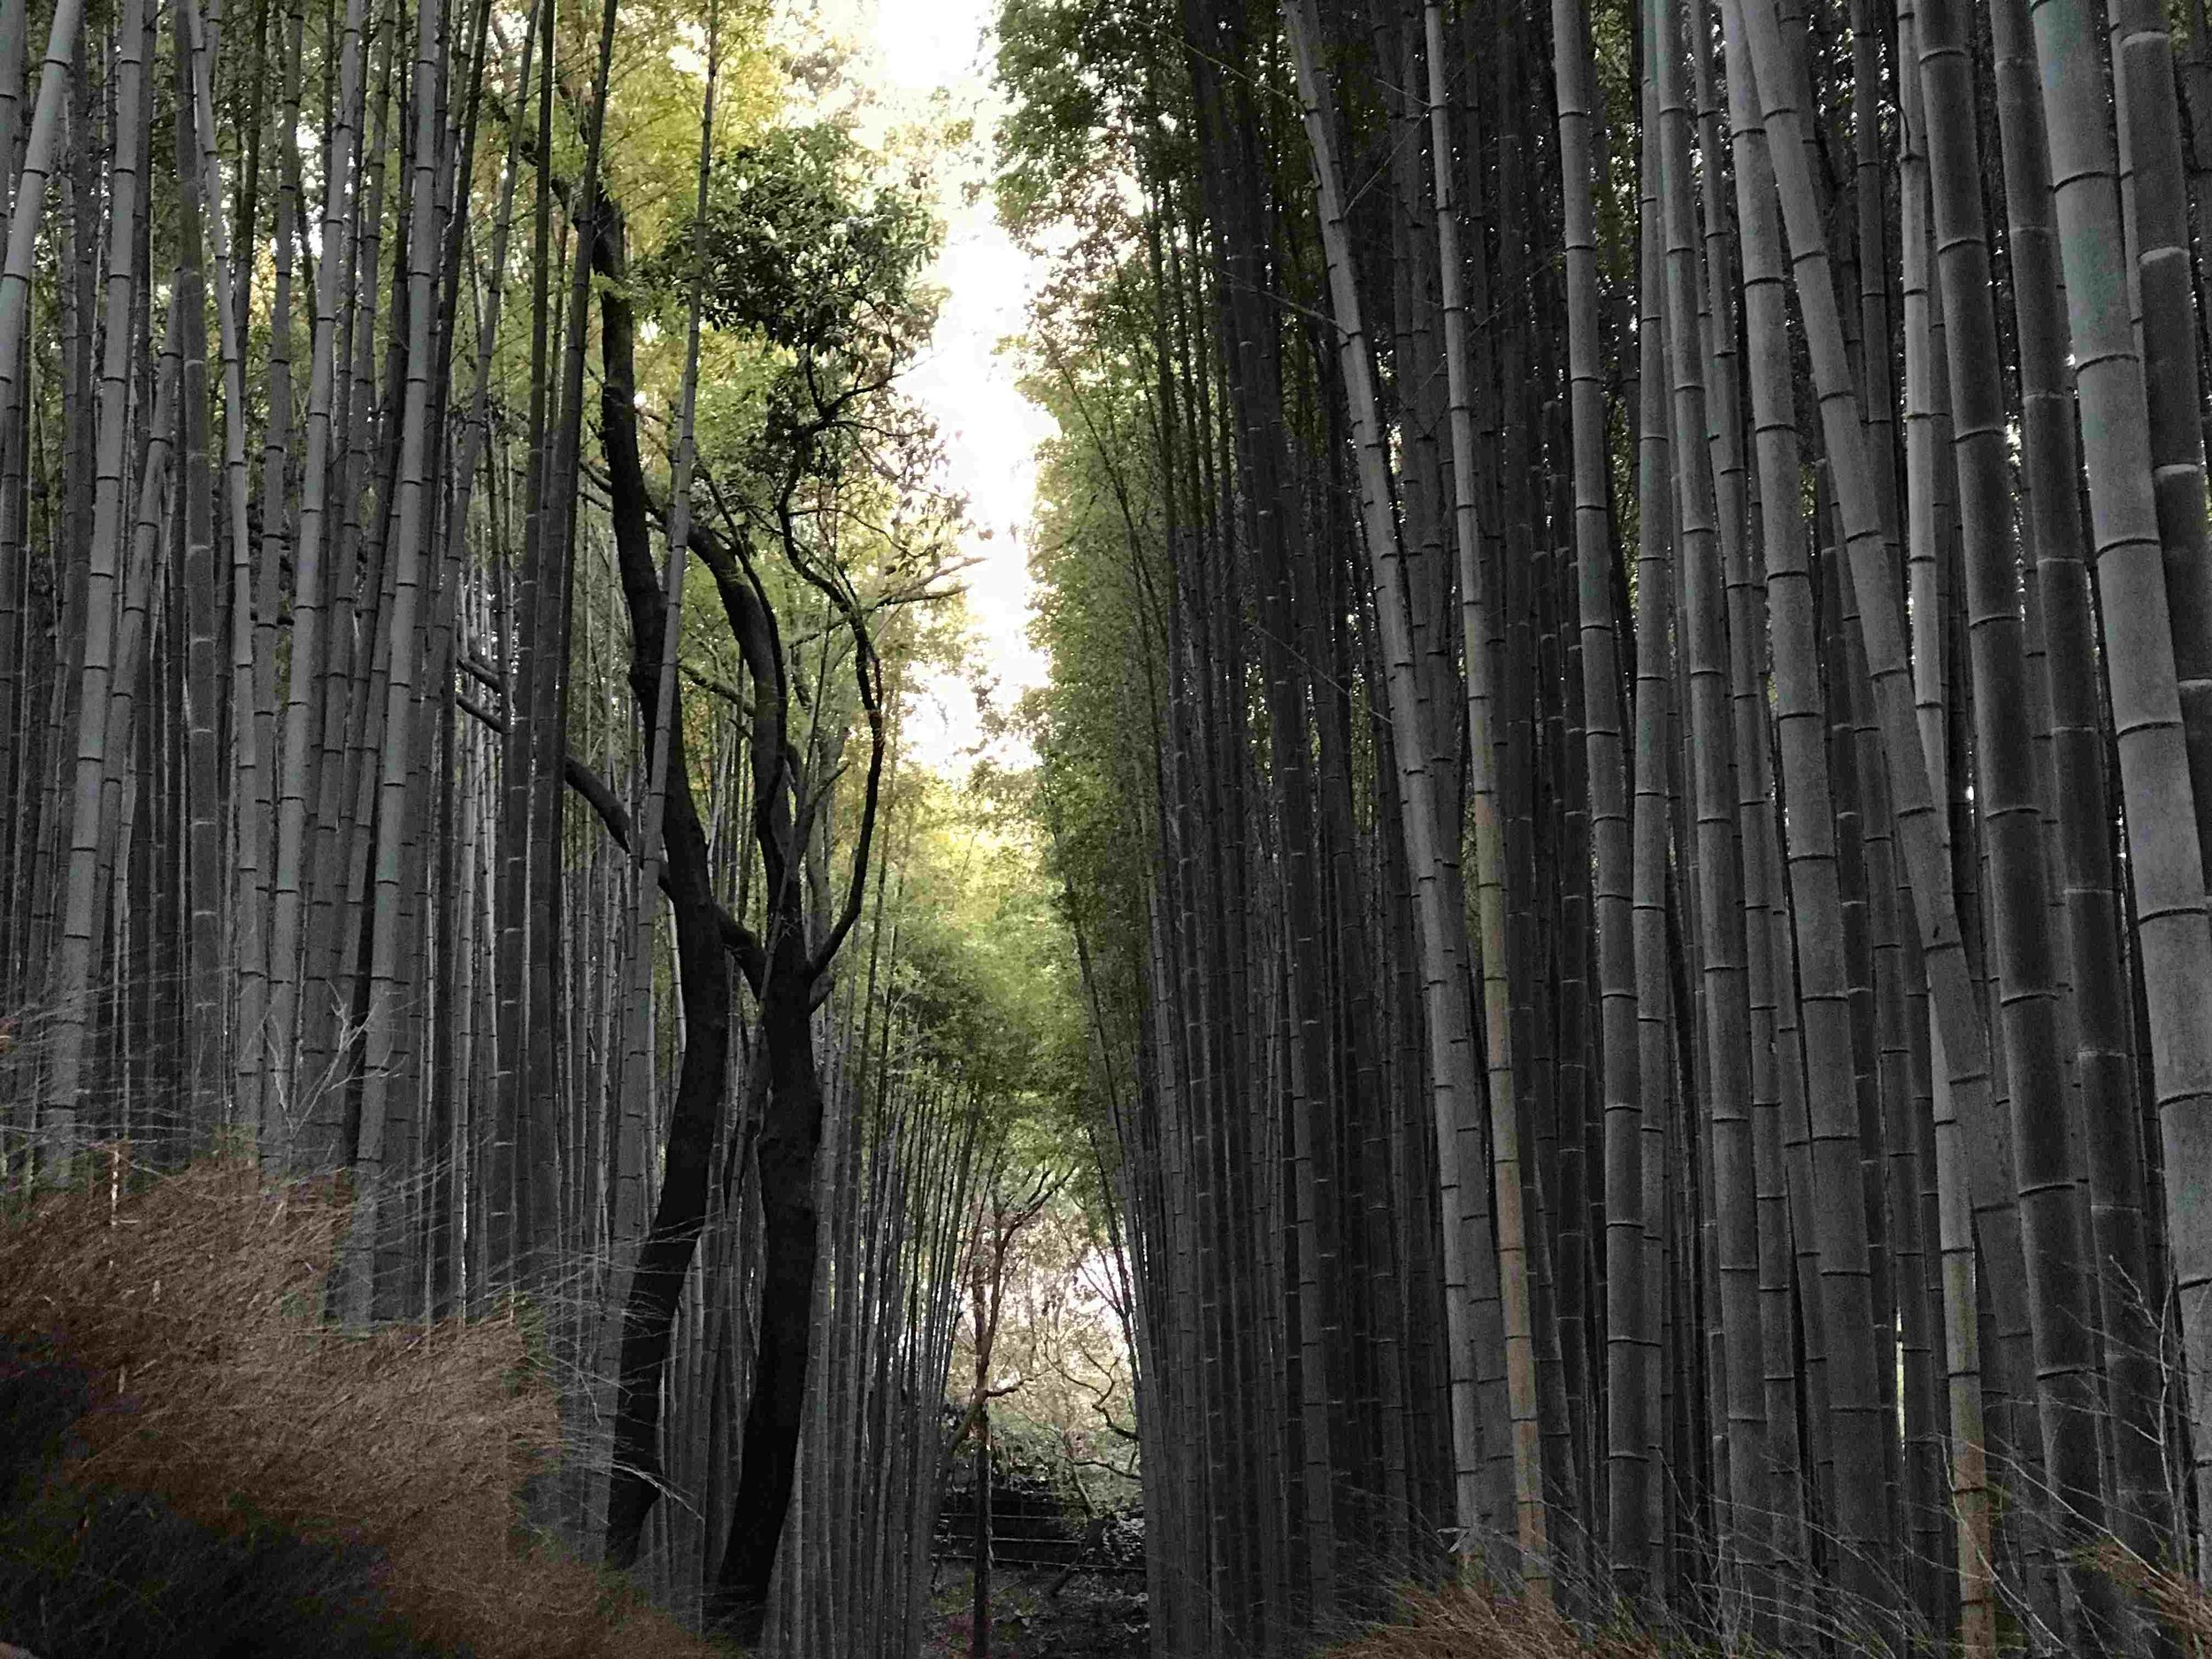 The bamboo forest before sunset